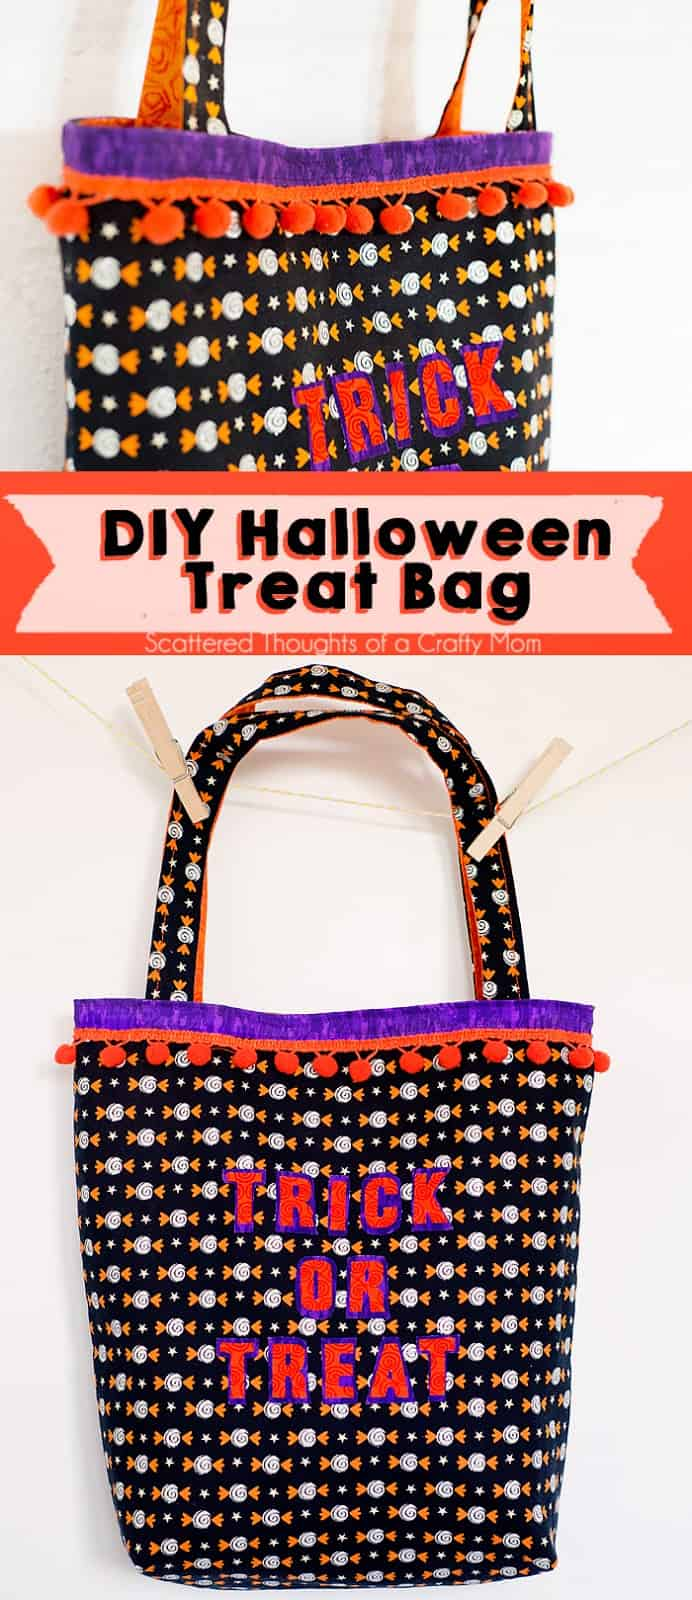 Make an easy DIY Tote bag for your Halloween candy with this easy to follow, Halloween Trick or Treat Bag tutorial.